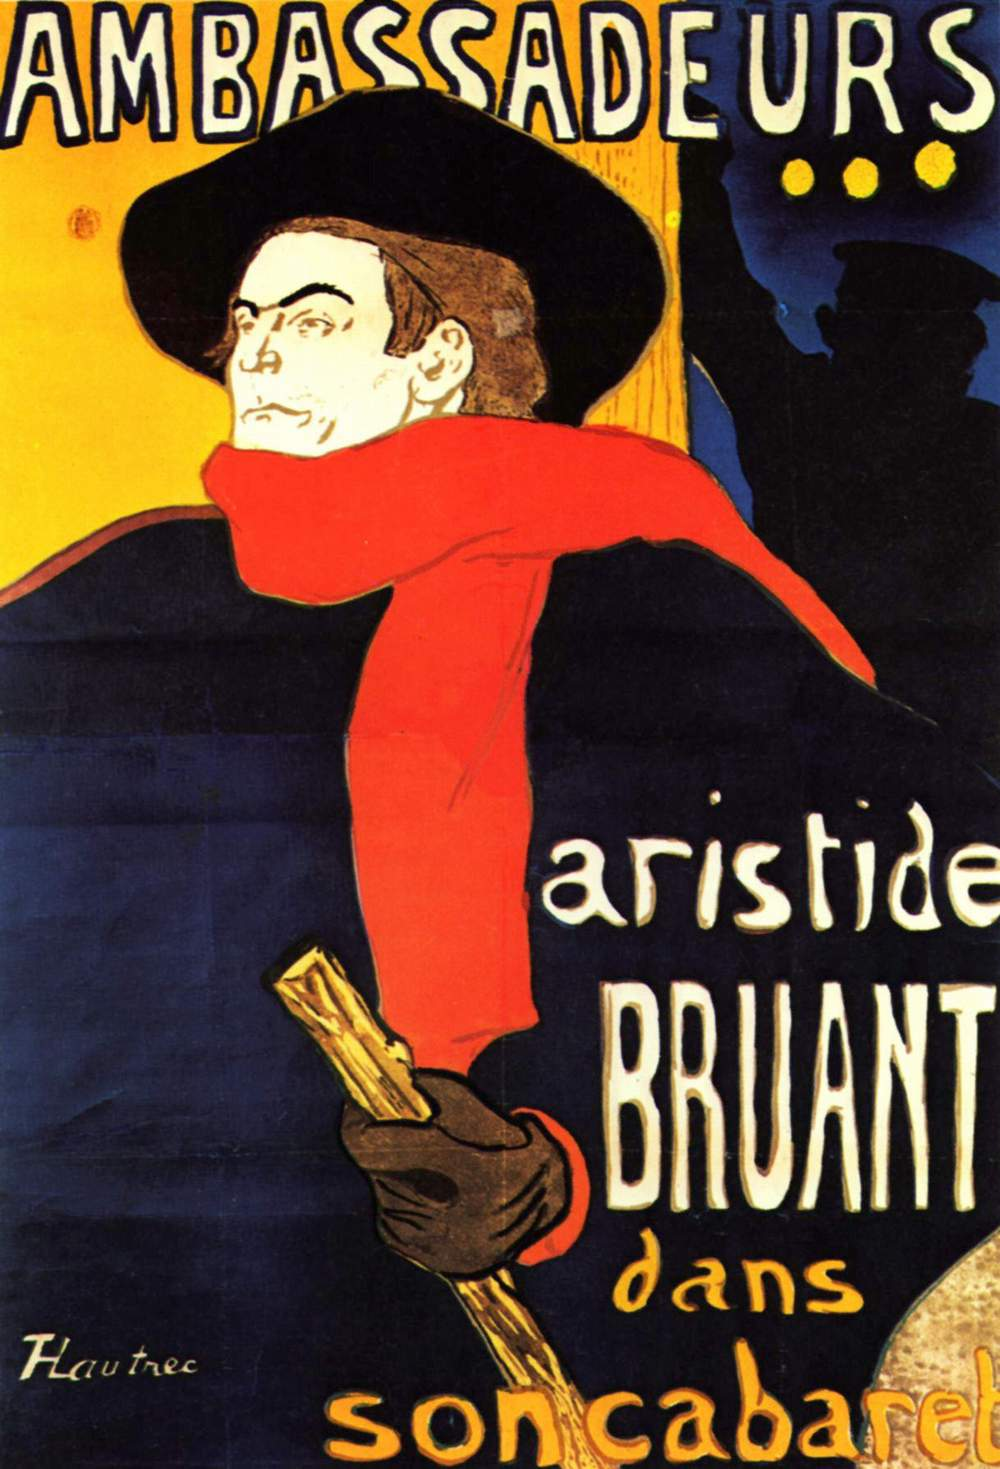 Advertising a gig for his friend Bruant.